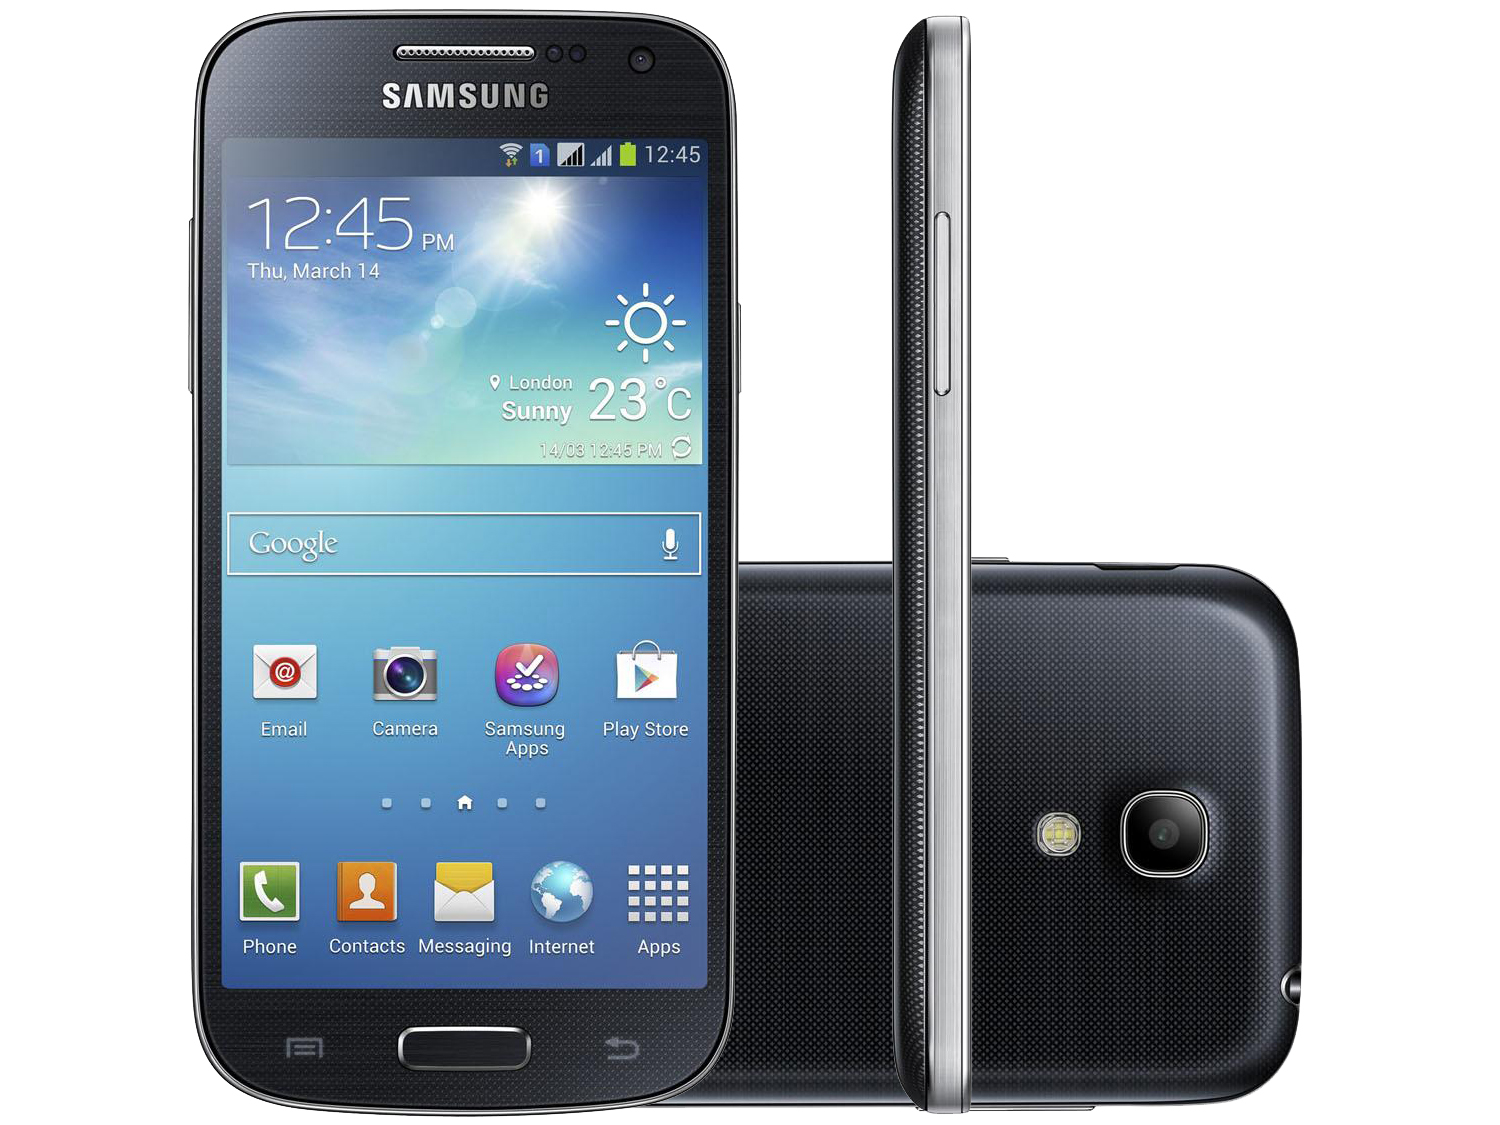 Update Samsung Galaxy S4 Mini I9190 to Android 6.0 Marshmallow